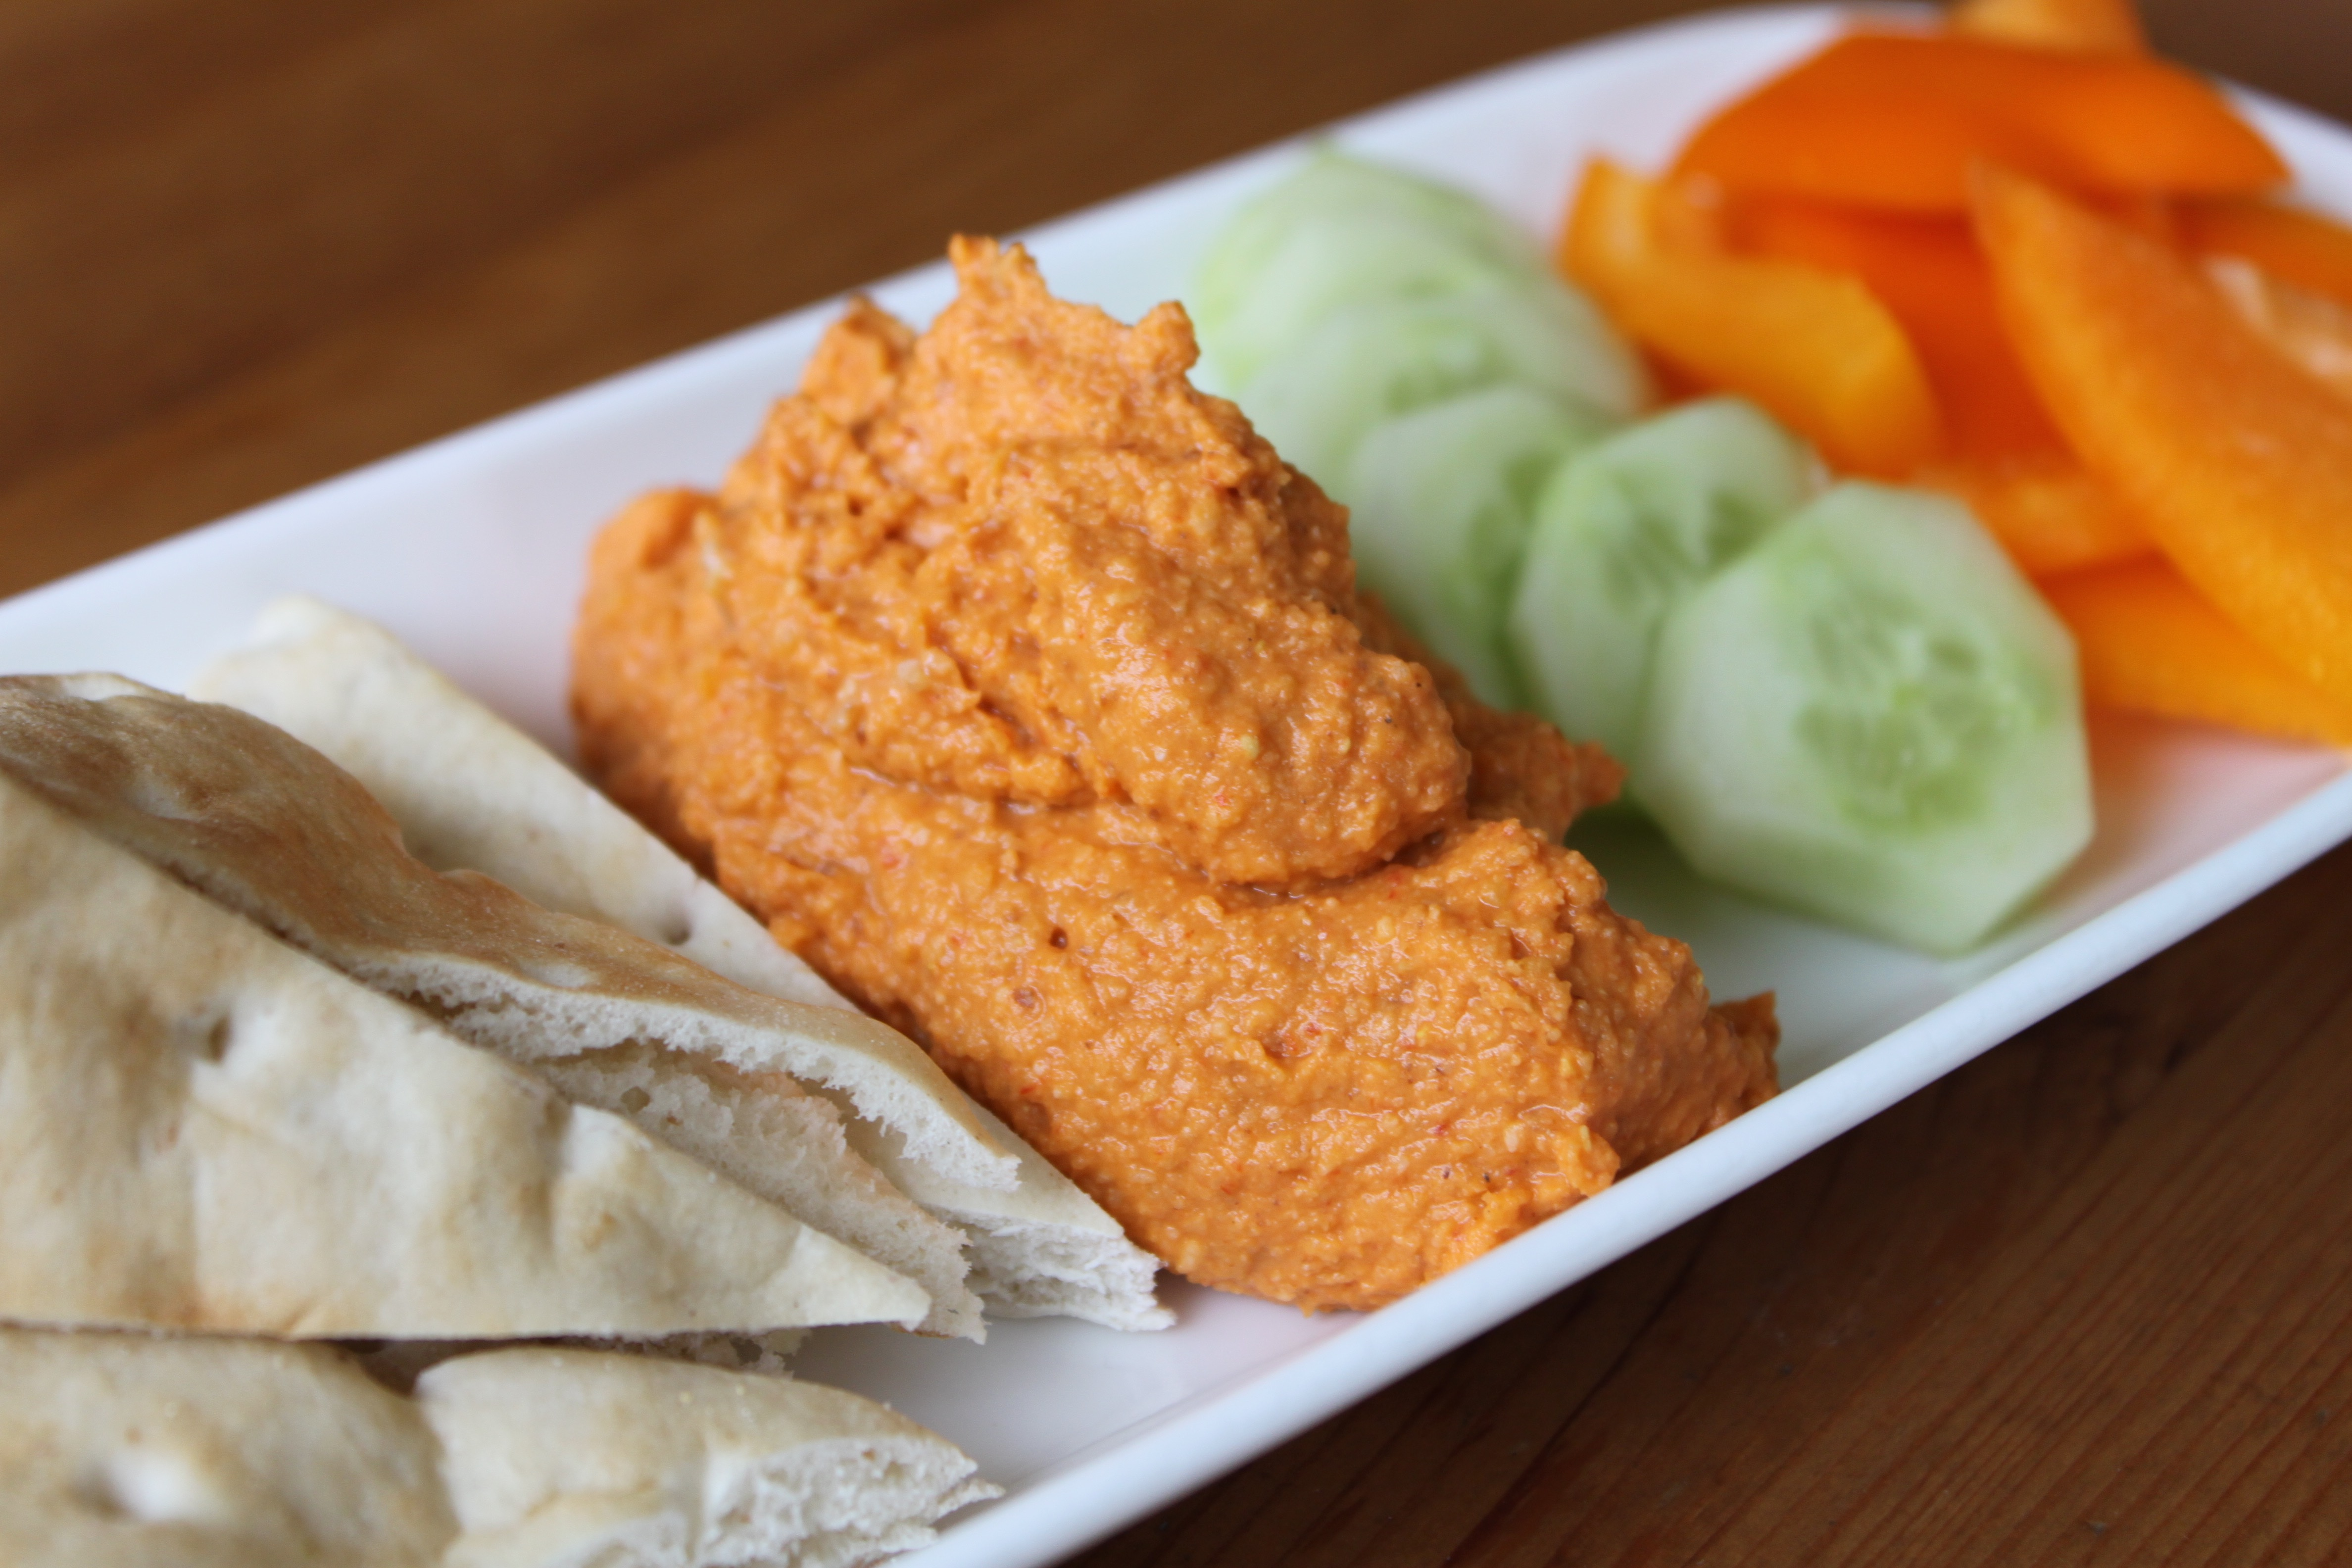 Roasted Red Pepper and Almond Hummus